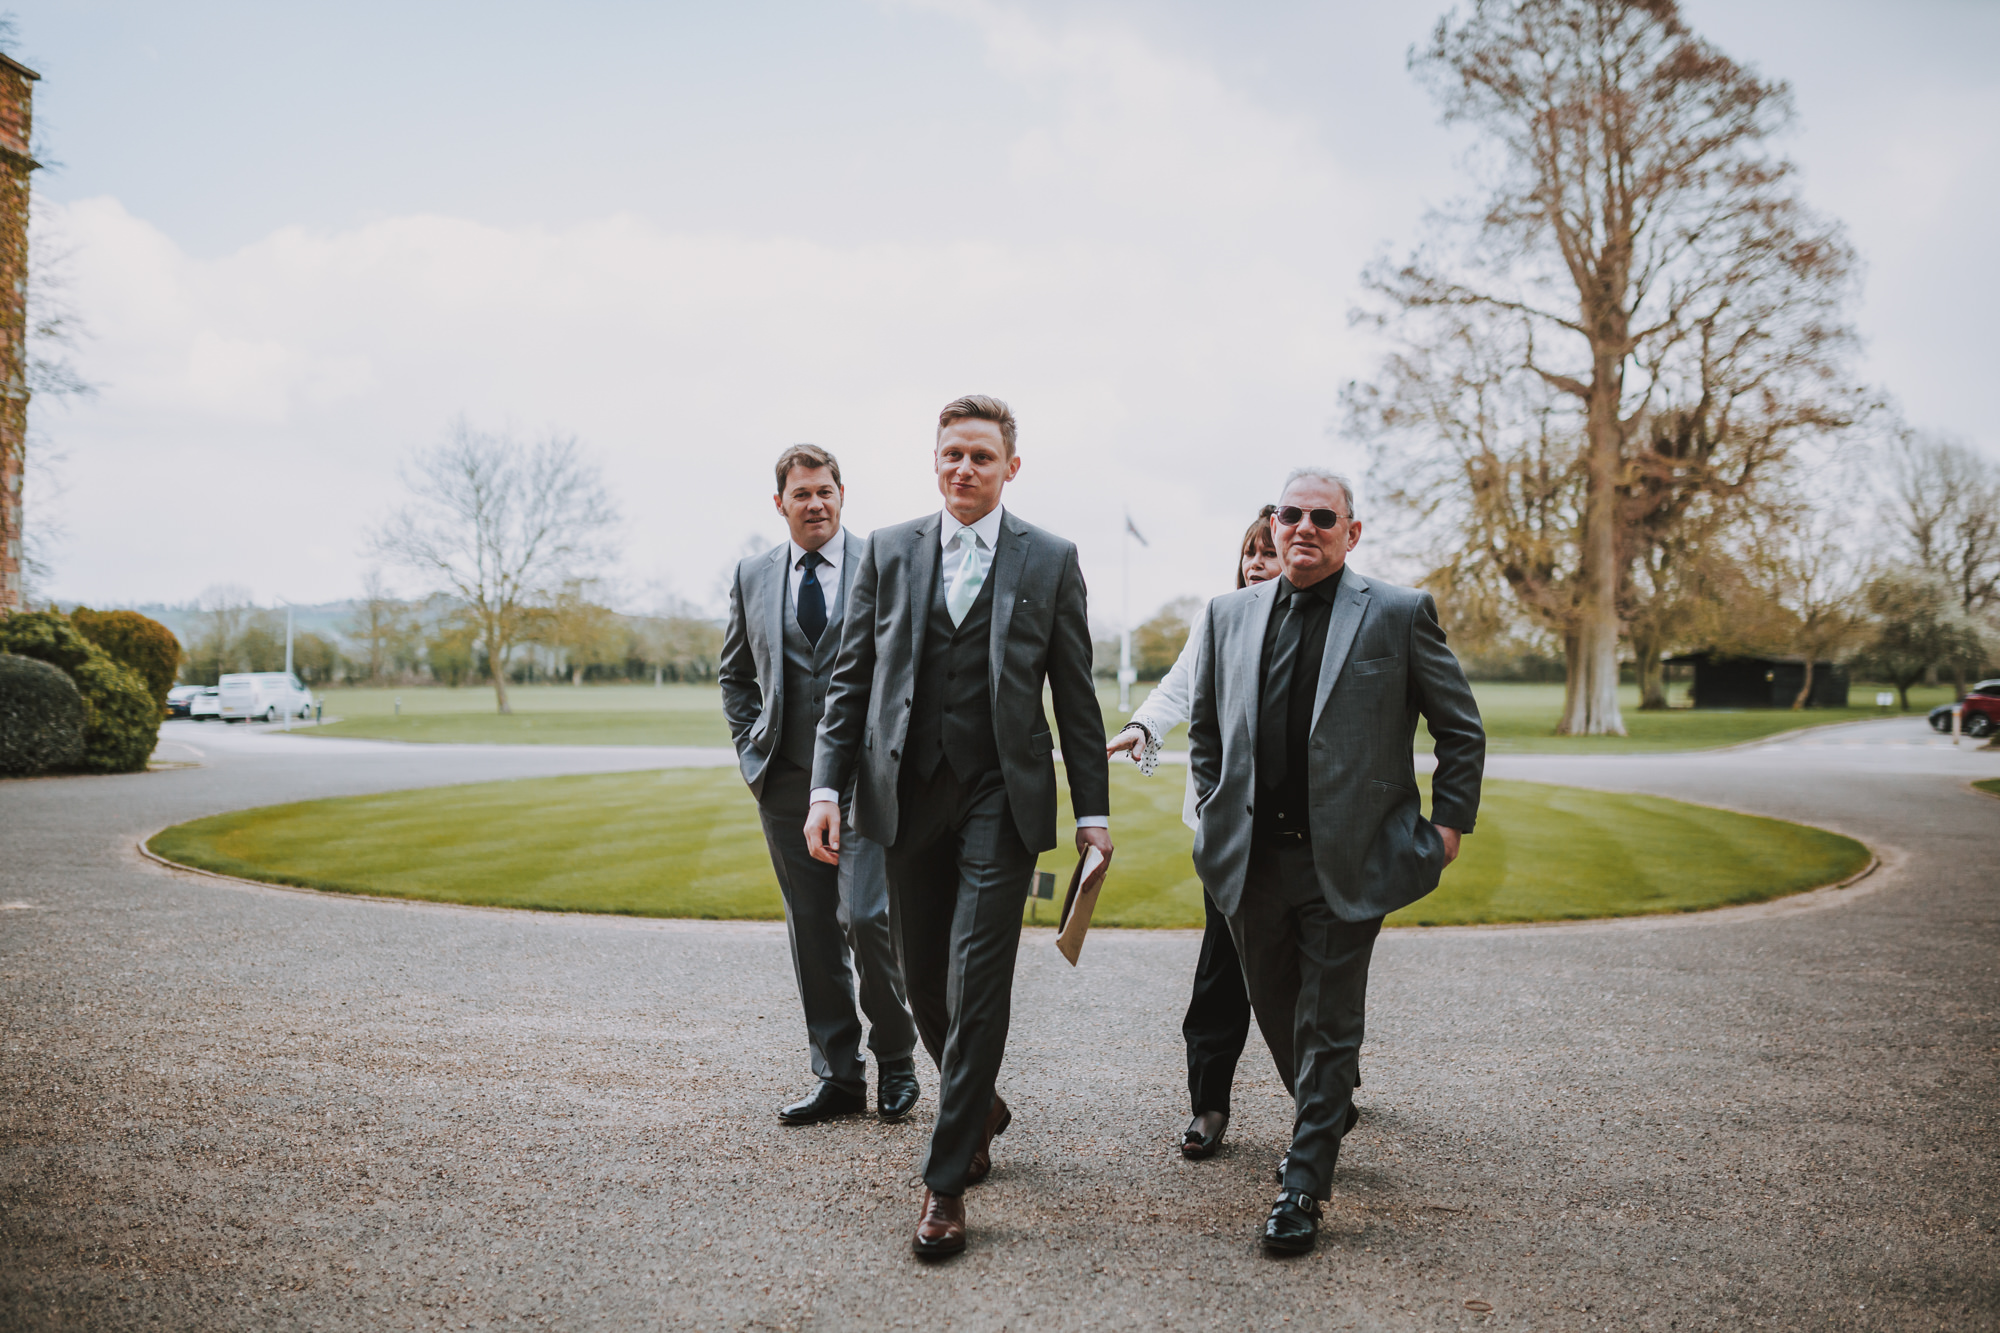 wedding photographers in buckinghamshire-8.jpg